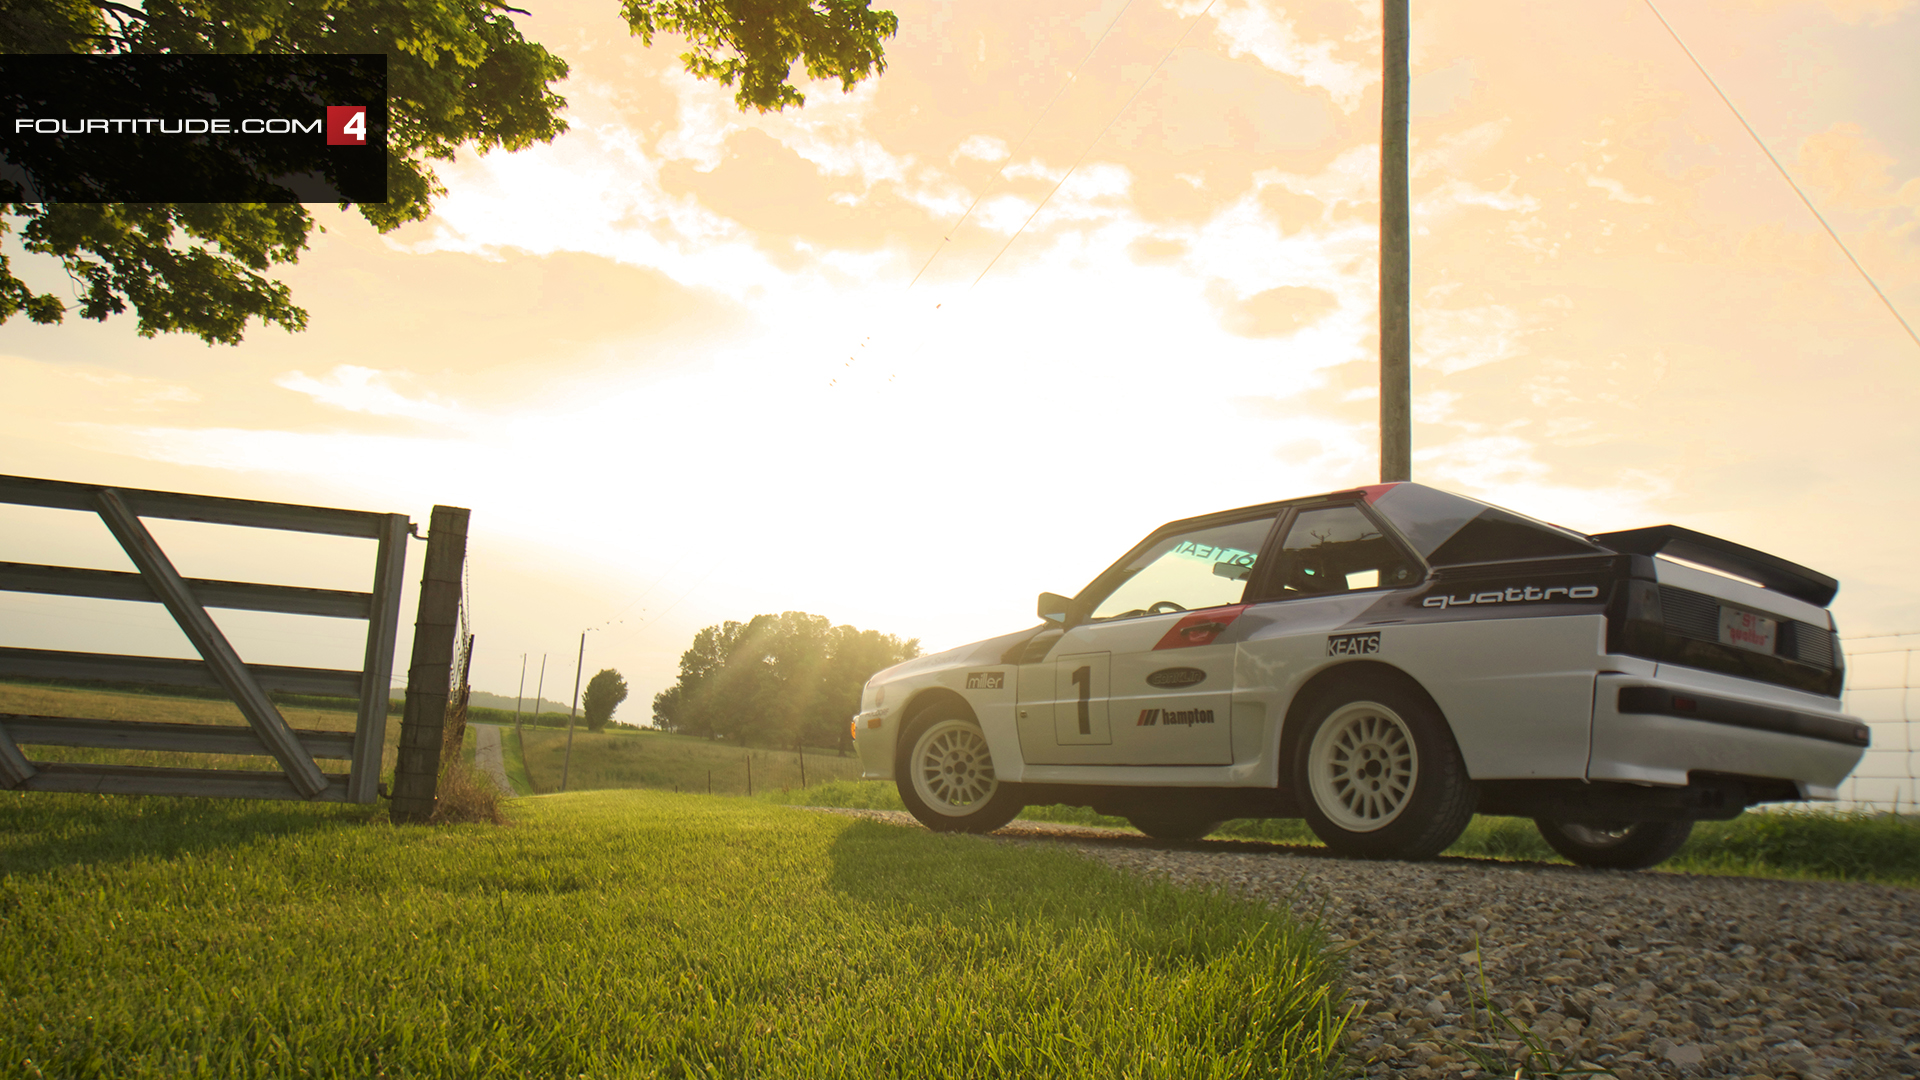 Audi Sport Quattro Wallpapers and Background Images   stmednet 1920x1080